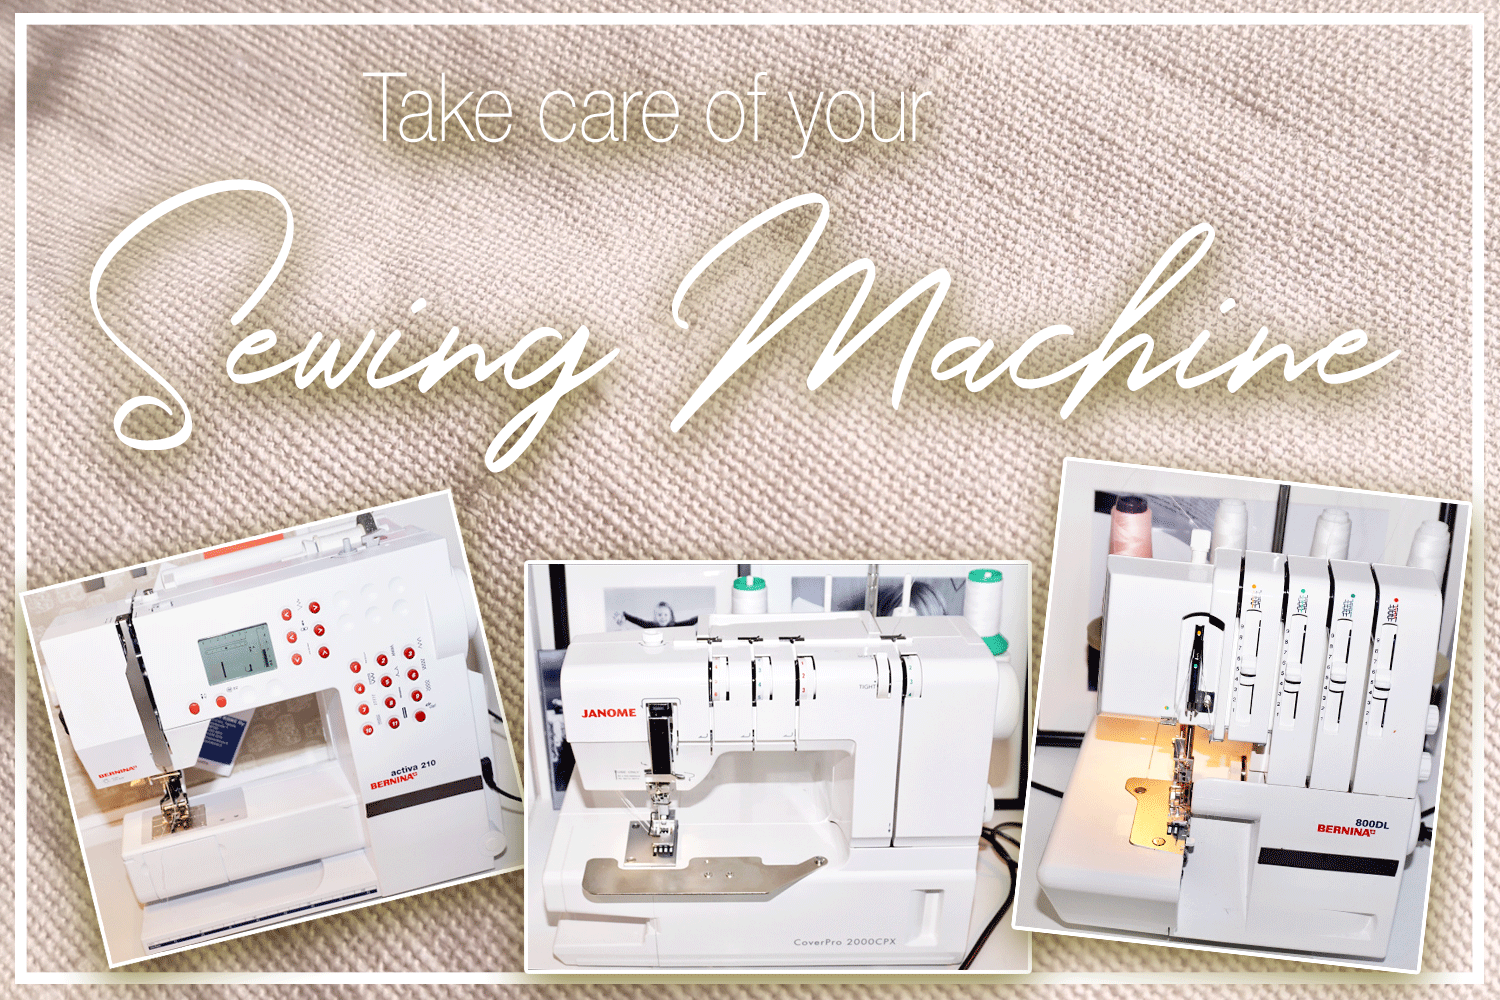 How to Change a Sewing Machine Needle - Do you find